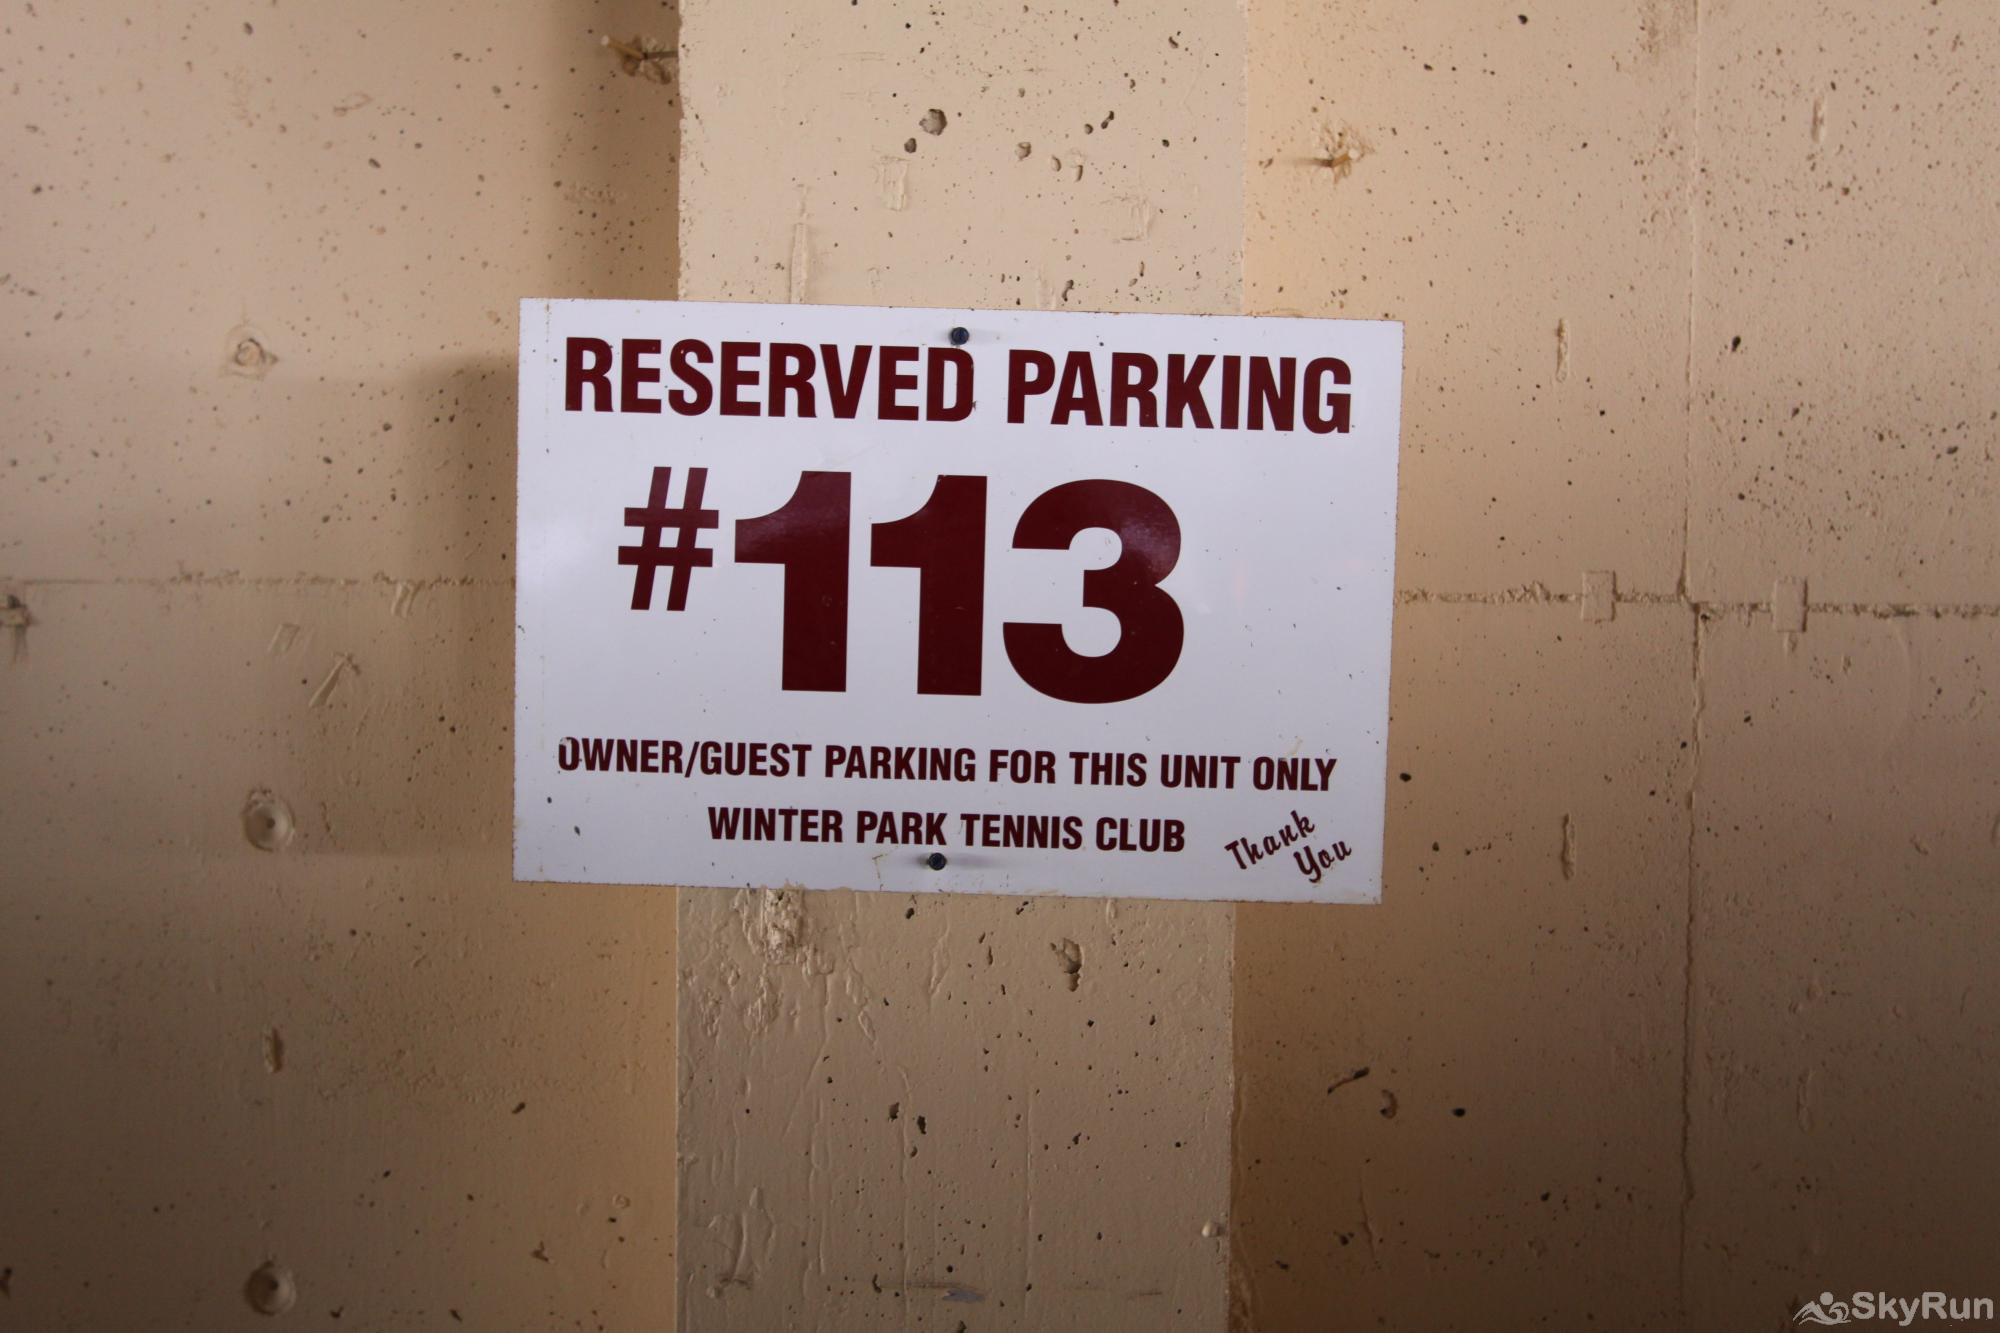 113B WPTC - Cranmer Rd Reserved parking ONE SPOT